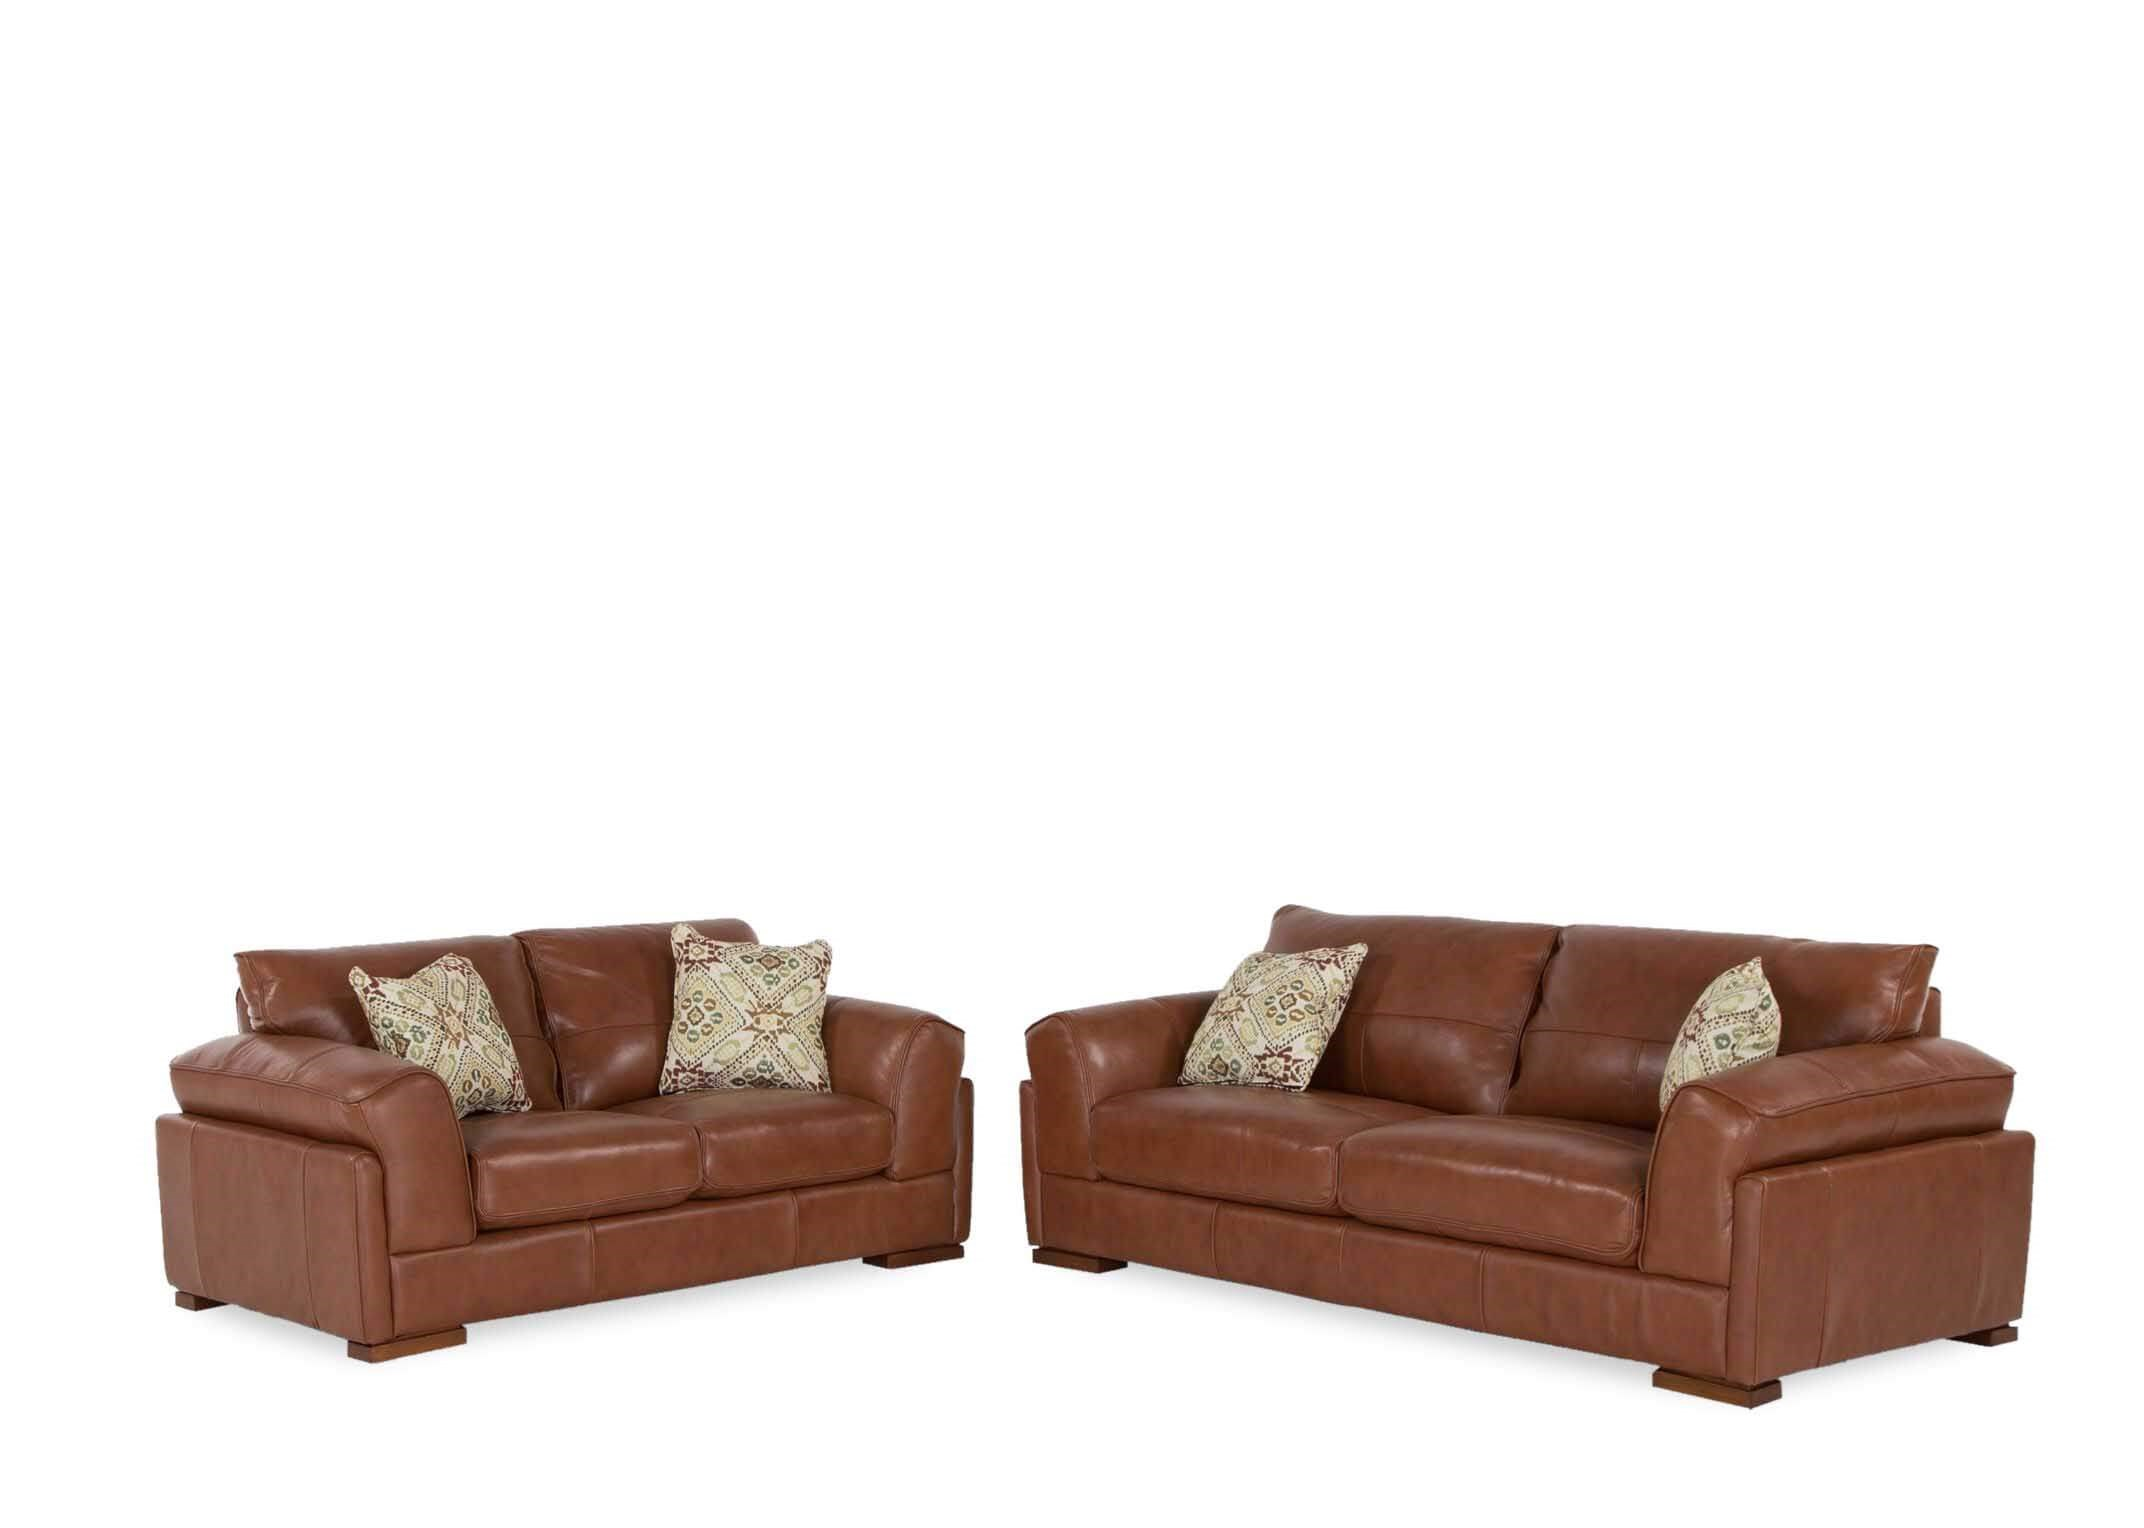 3 Seater Brown Leather Sofa Torino Ez Living Furniture